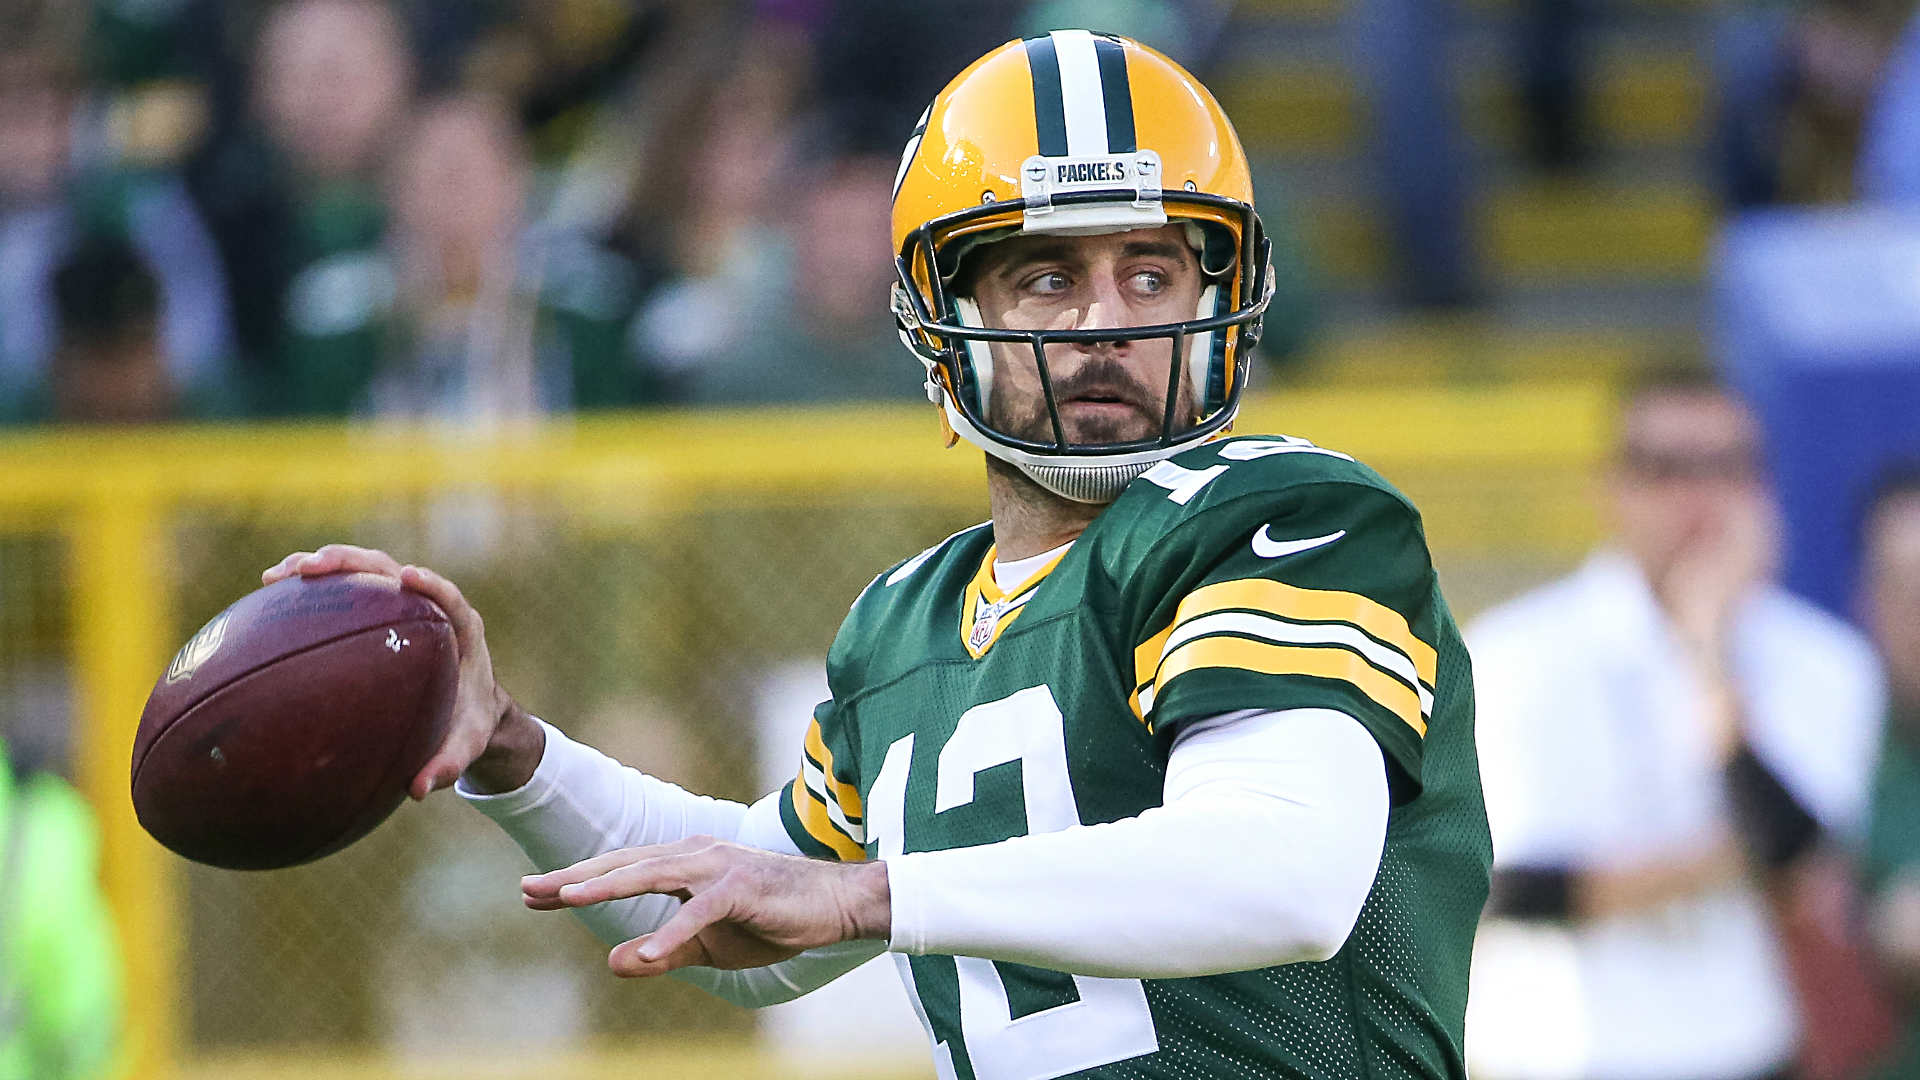 Aaron-Rodgers-111515-USNews-Getty-FTR